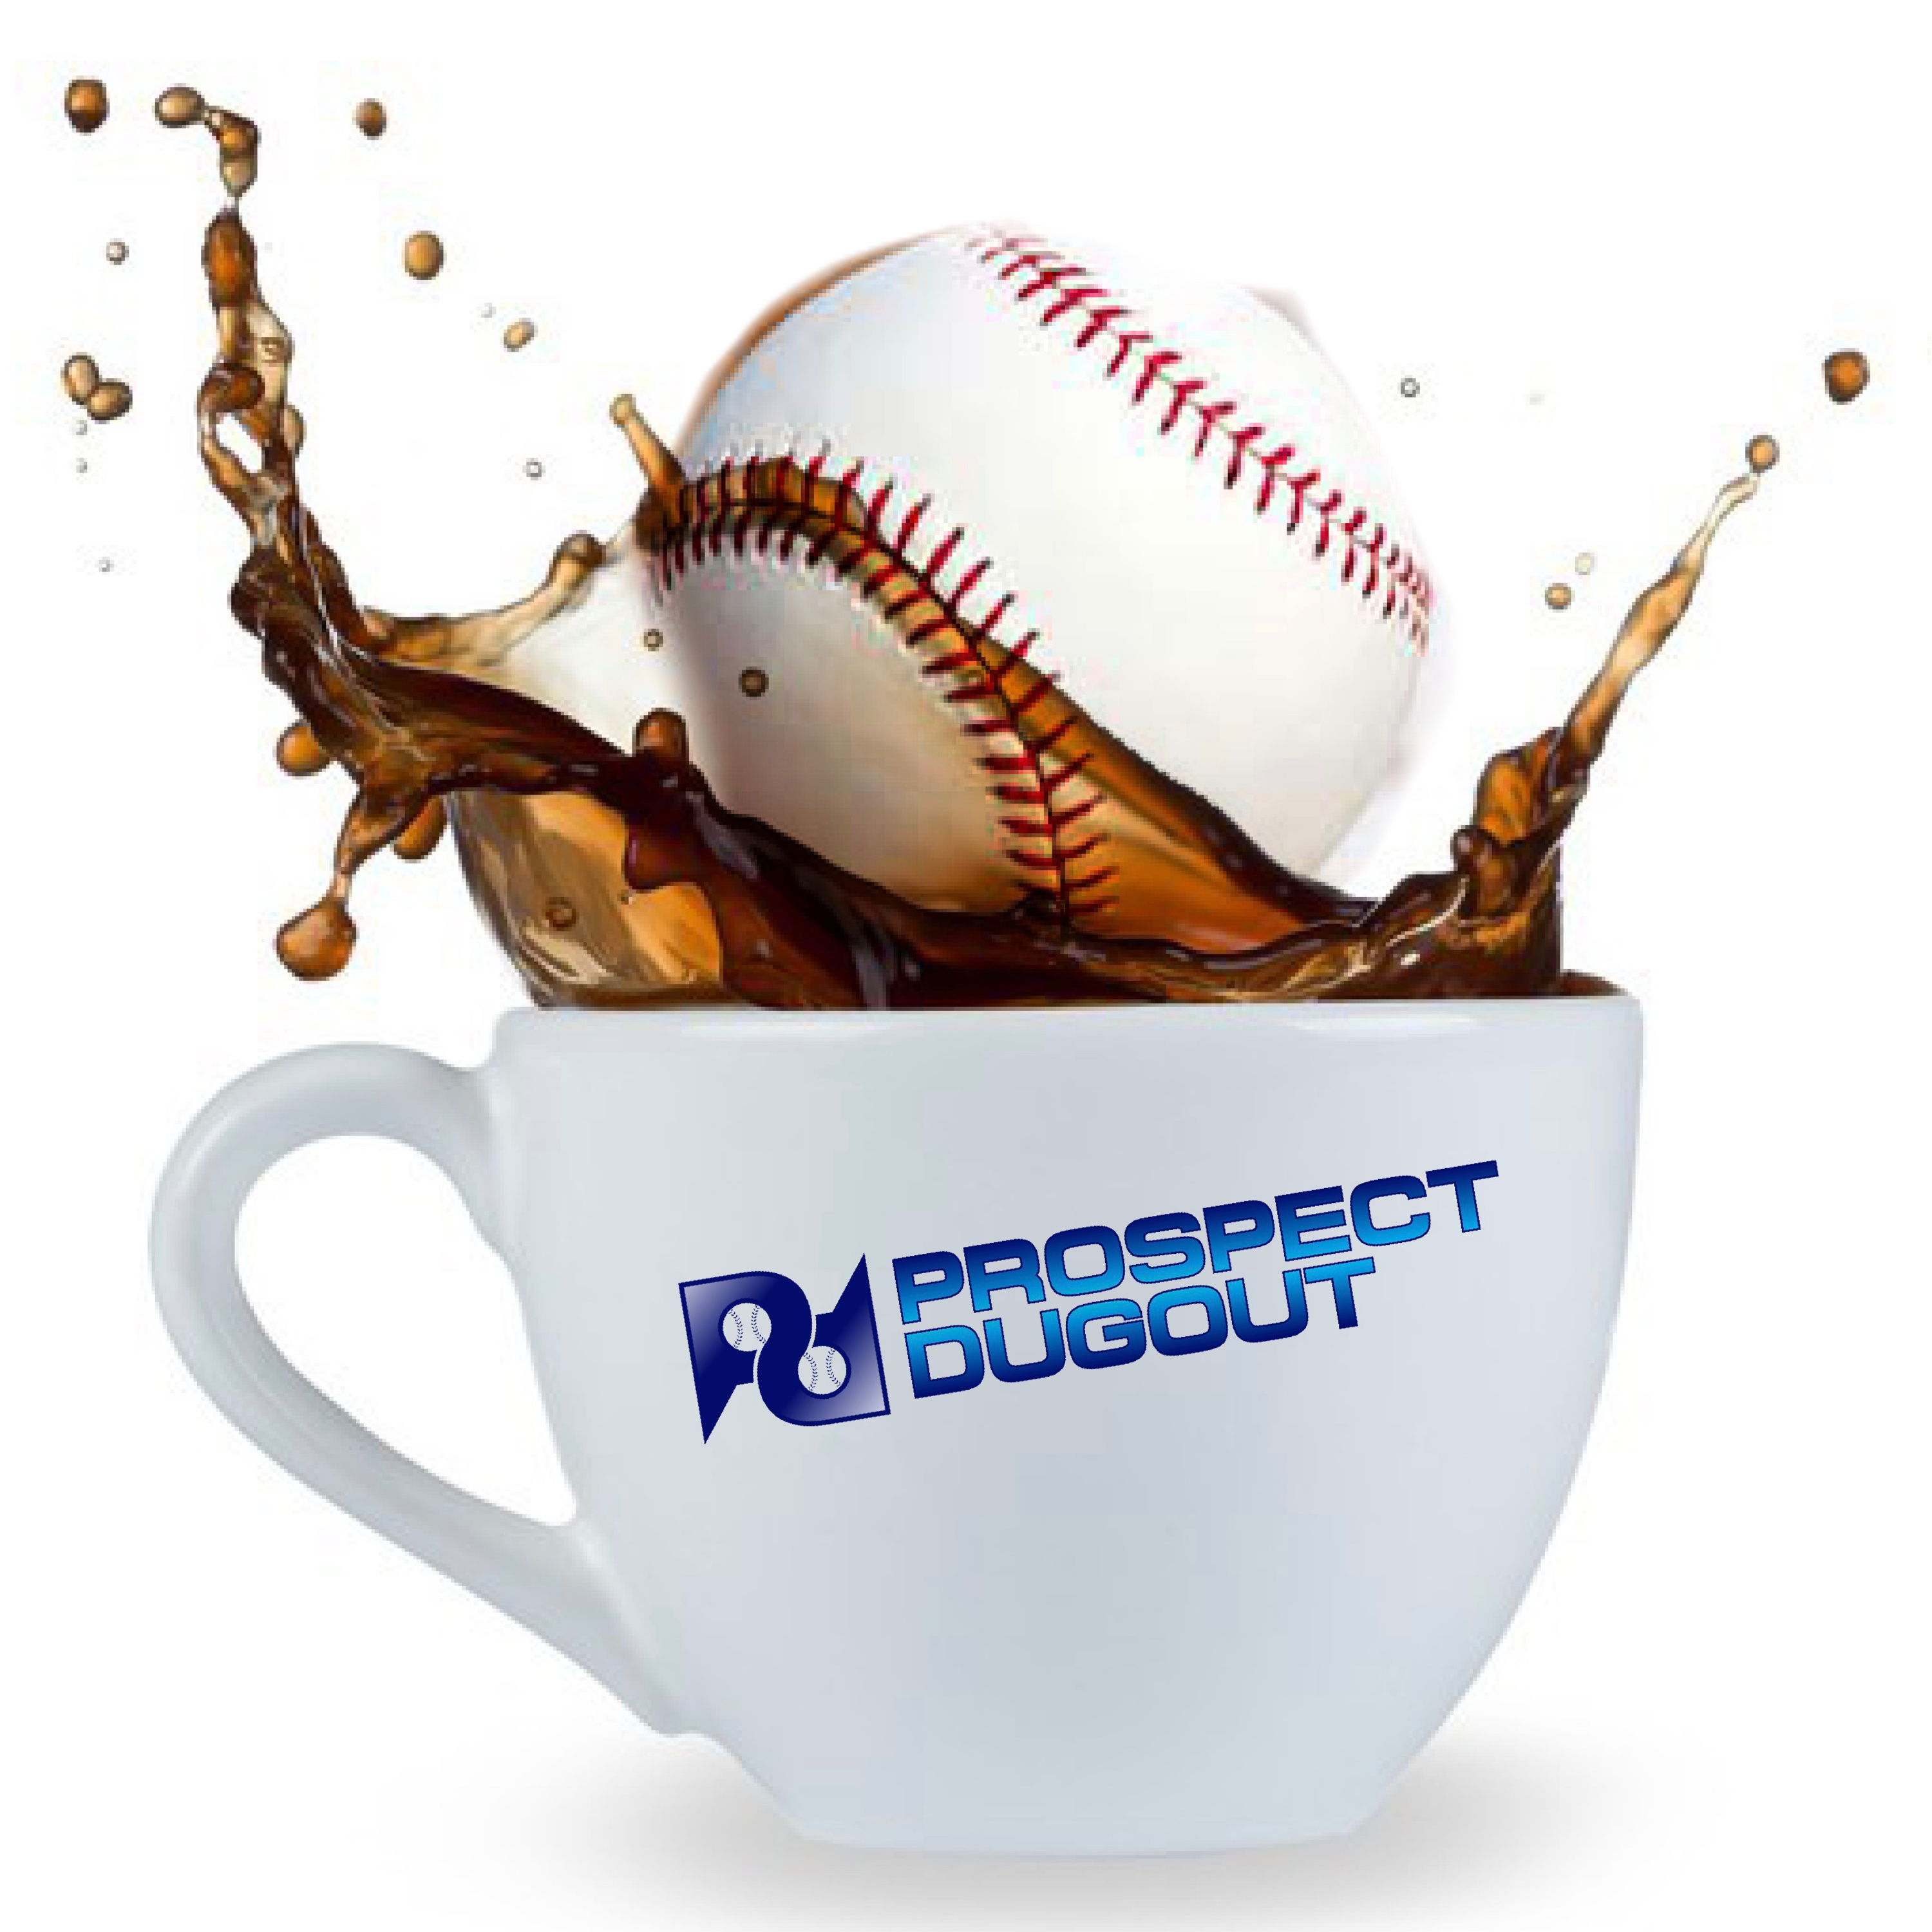 Cup of Coffee Episode 6 - MLB season about to begin? Minor League player sink or swim time!